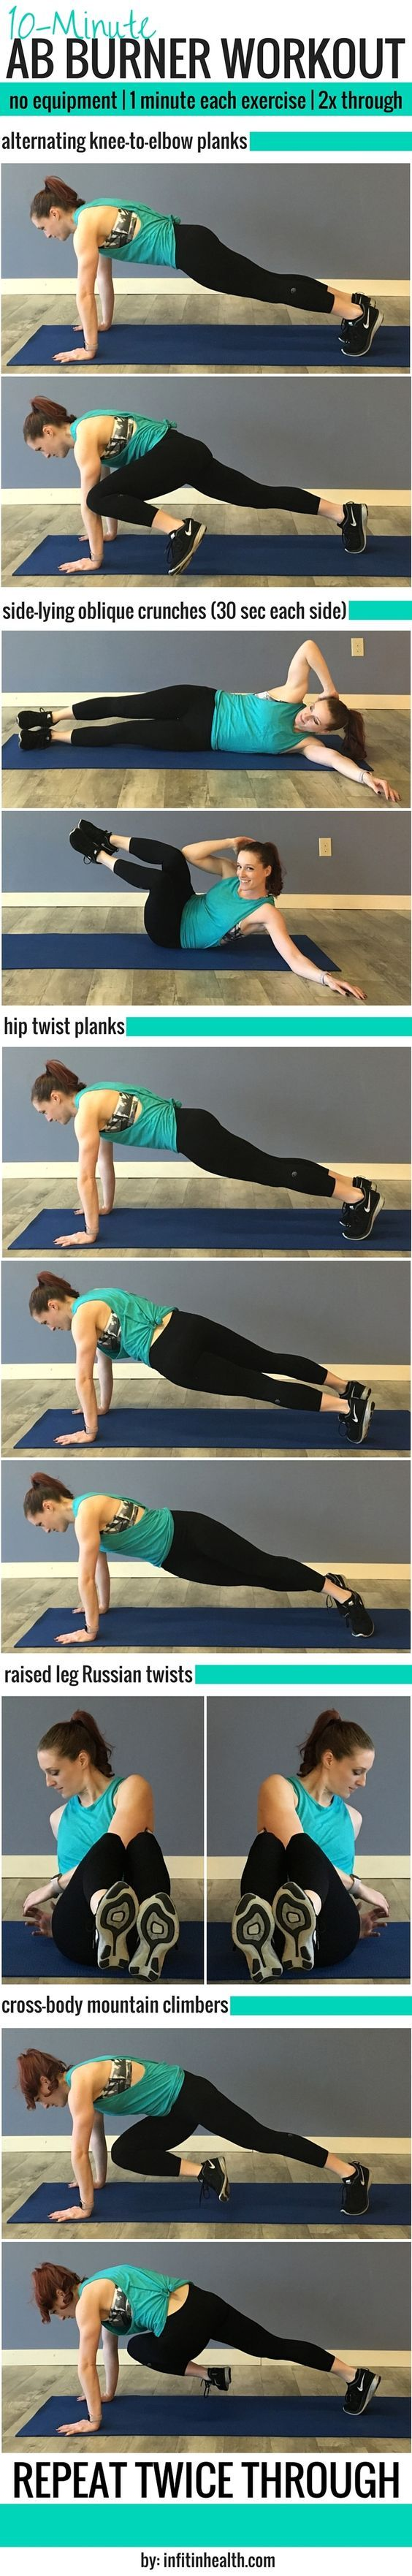 Maybe your New Year's goal was to get back in shape and things fell off, or maybe you simply feel it's time to invest more in your health. Here are five quick 10-minute workout routines you can do before school or work, or on your break! Do you have any quick fitness tips or are you on a health journey? Sharing is caring. Comment below!